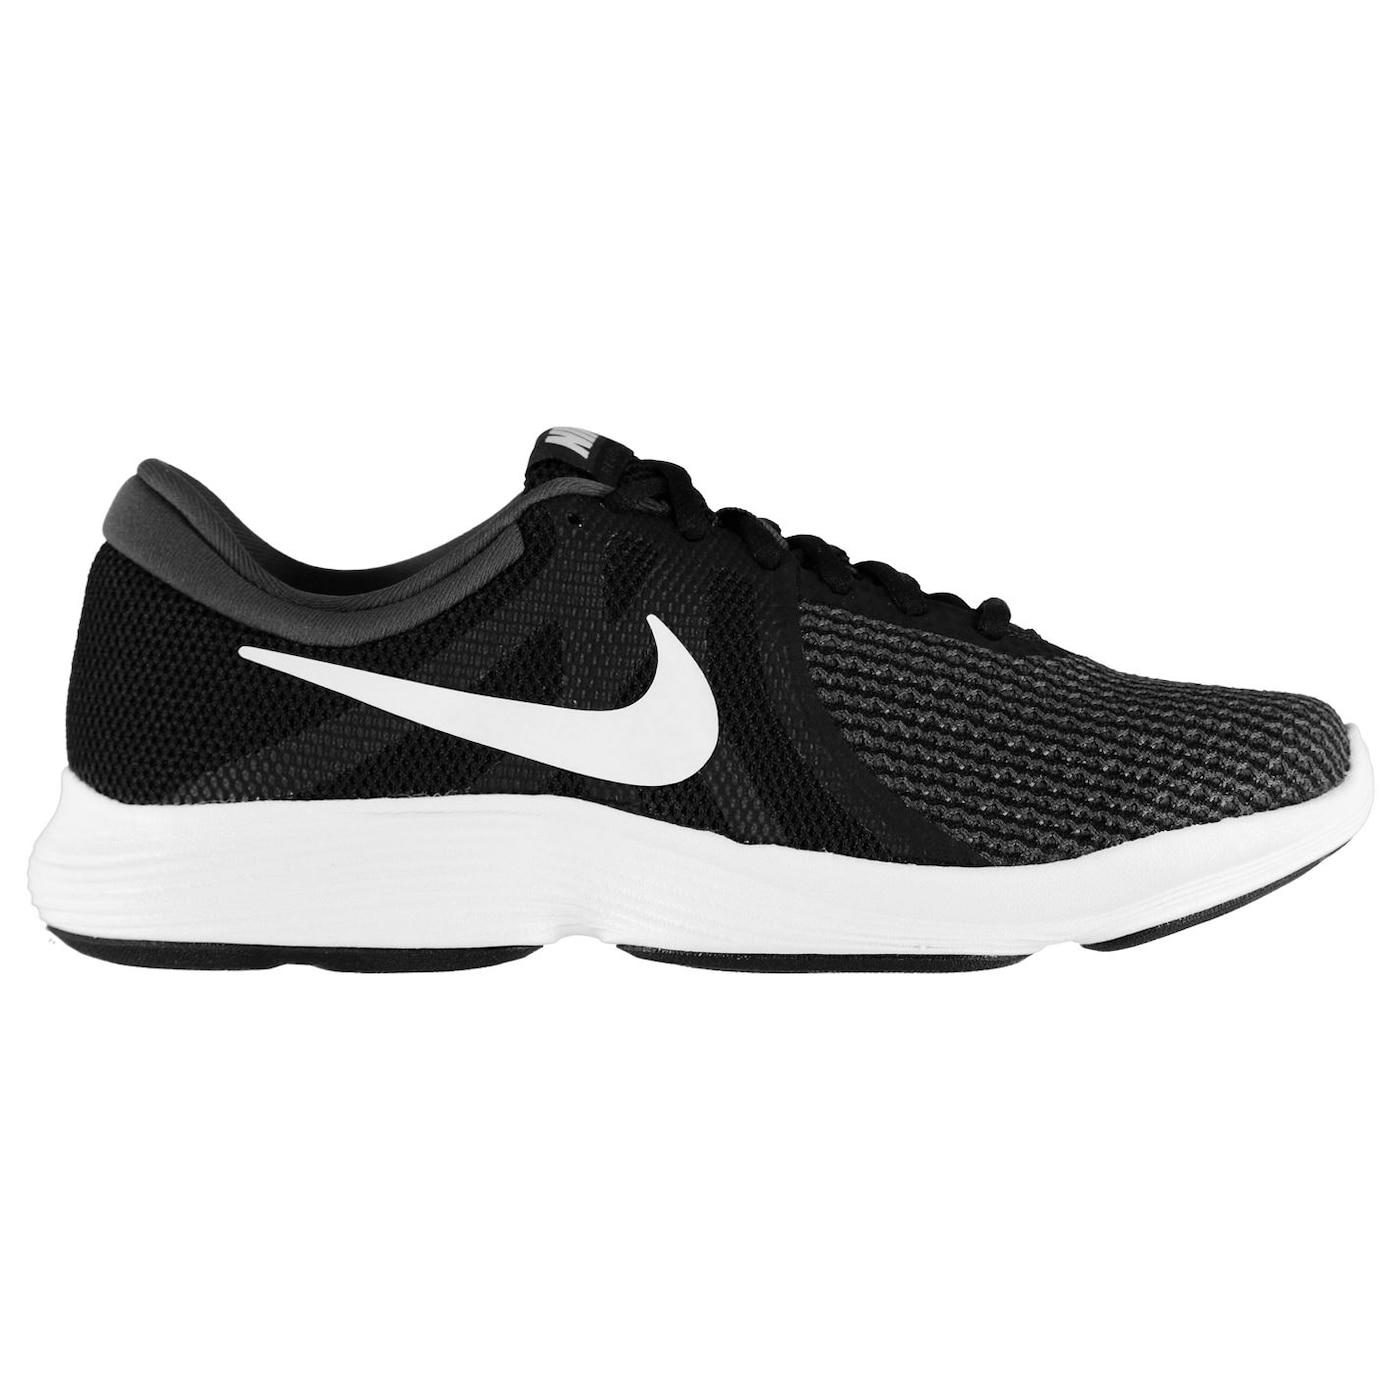 Nike Revolution 4 Running Shoes Ladies